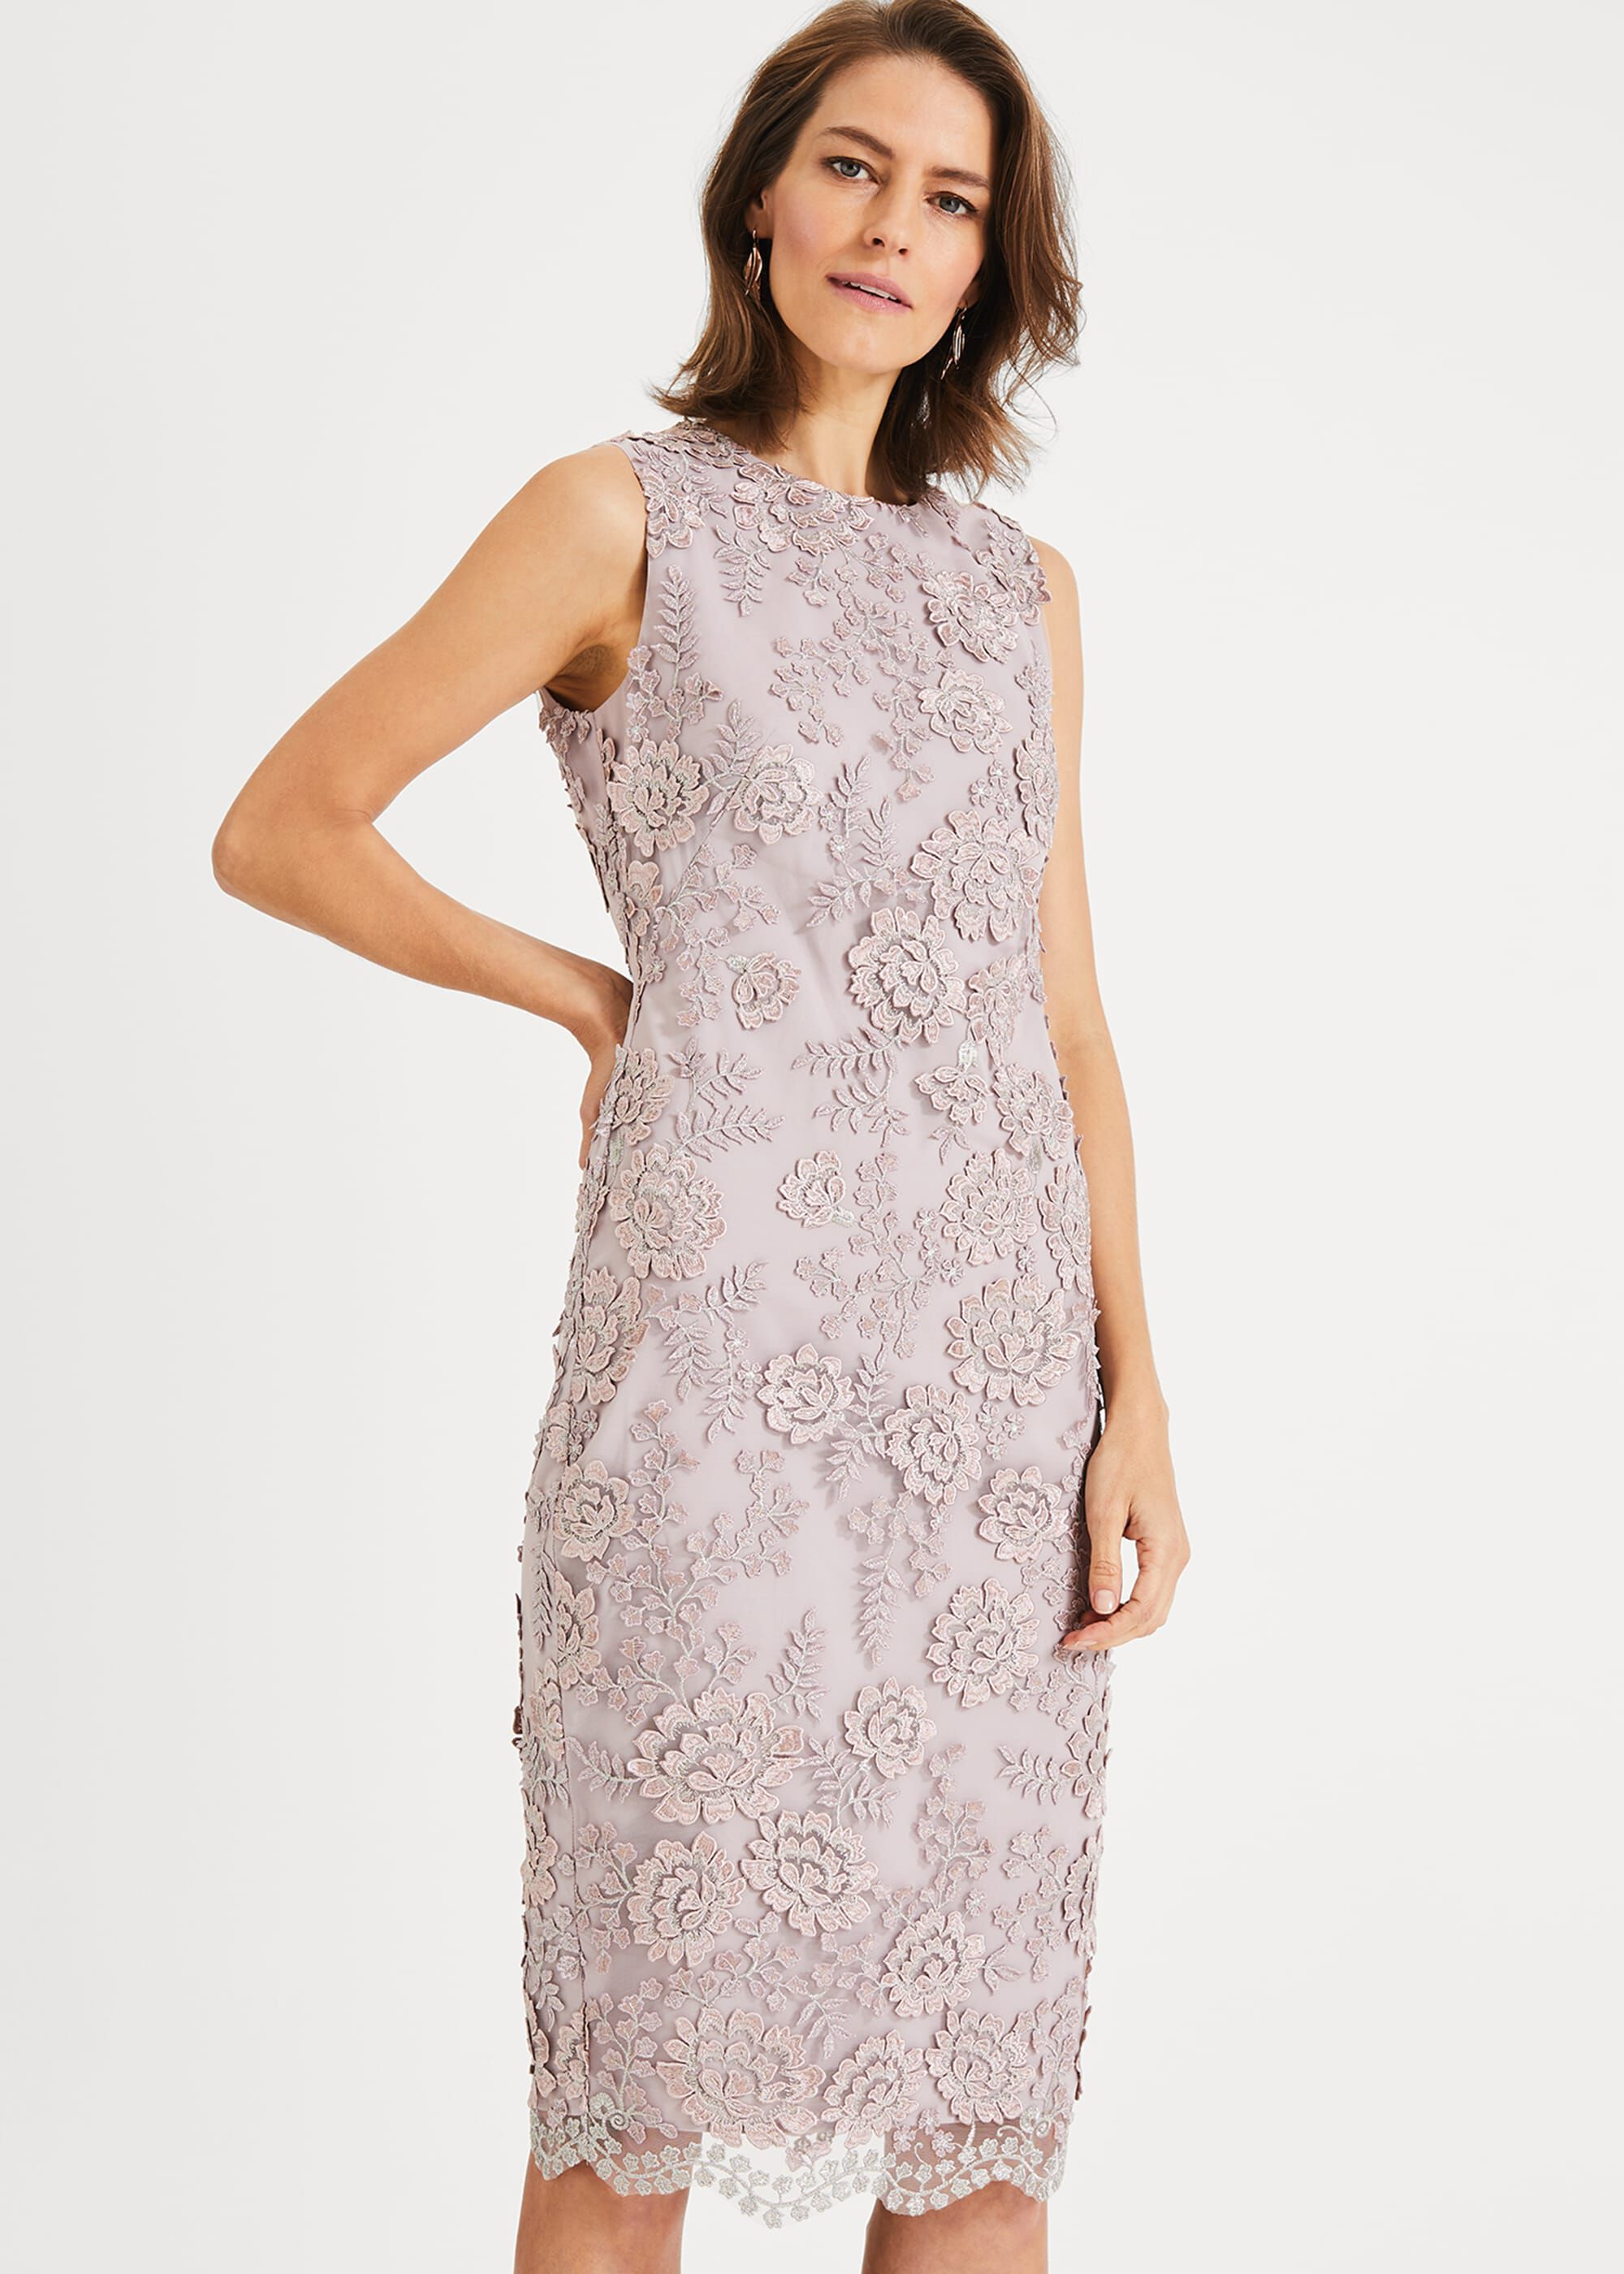 Phase Eight Teresa Metallic Lace Dress, Purple, Shift, Occasion Dress